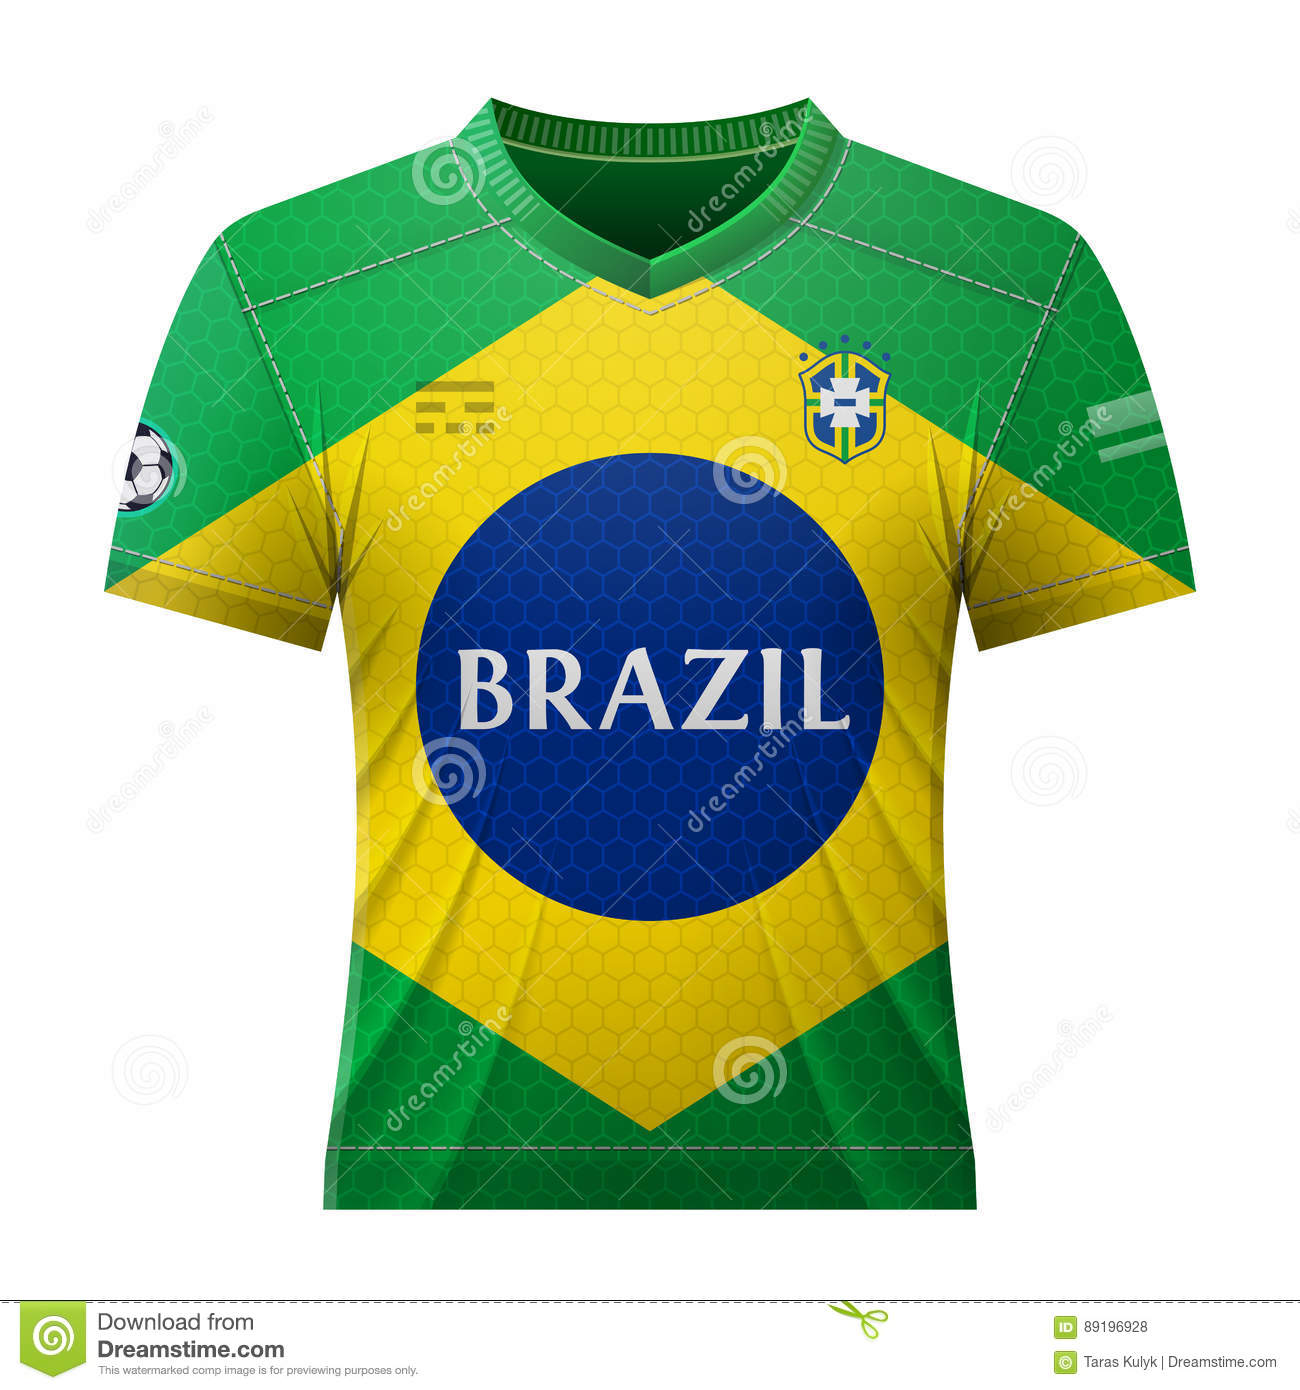 485e7a1b680 National jersey for football team of Brazil. Qualitative vector  illustration about soccer